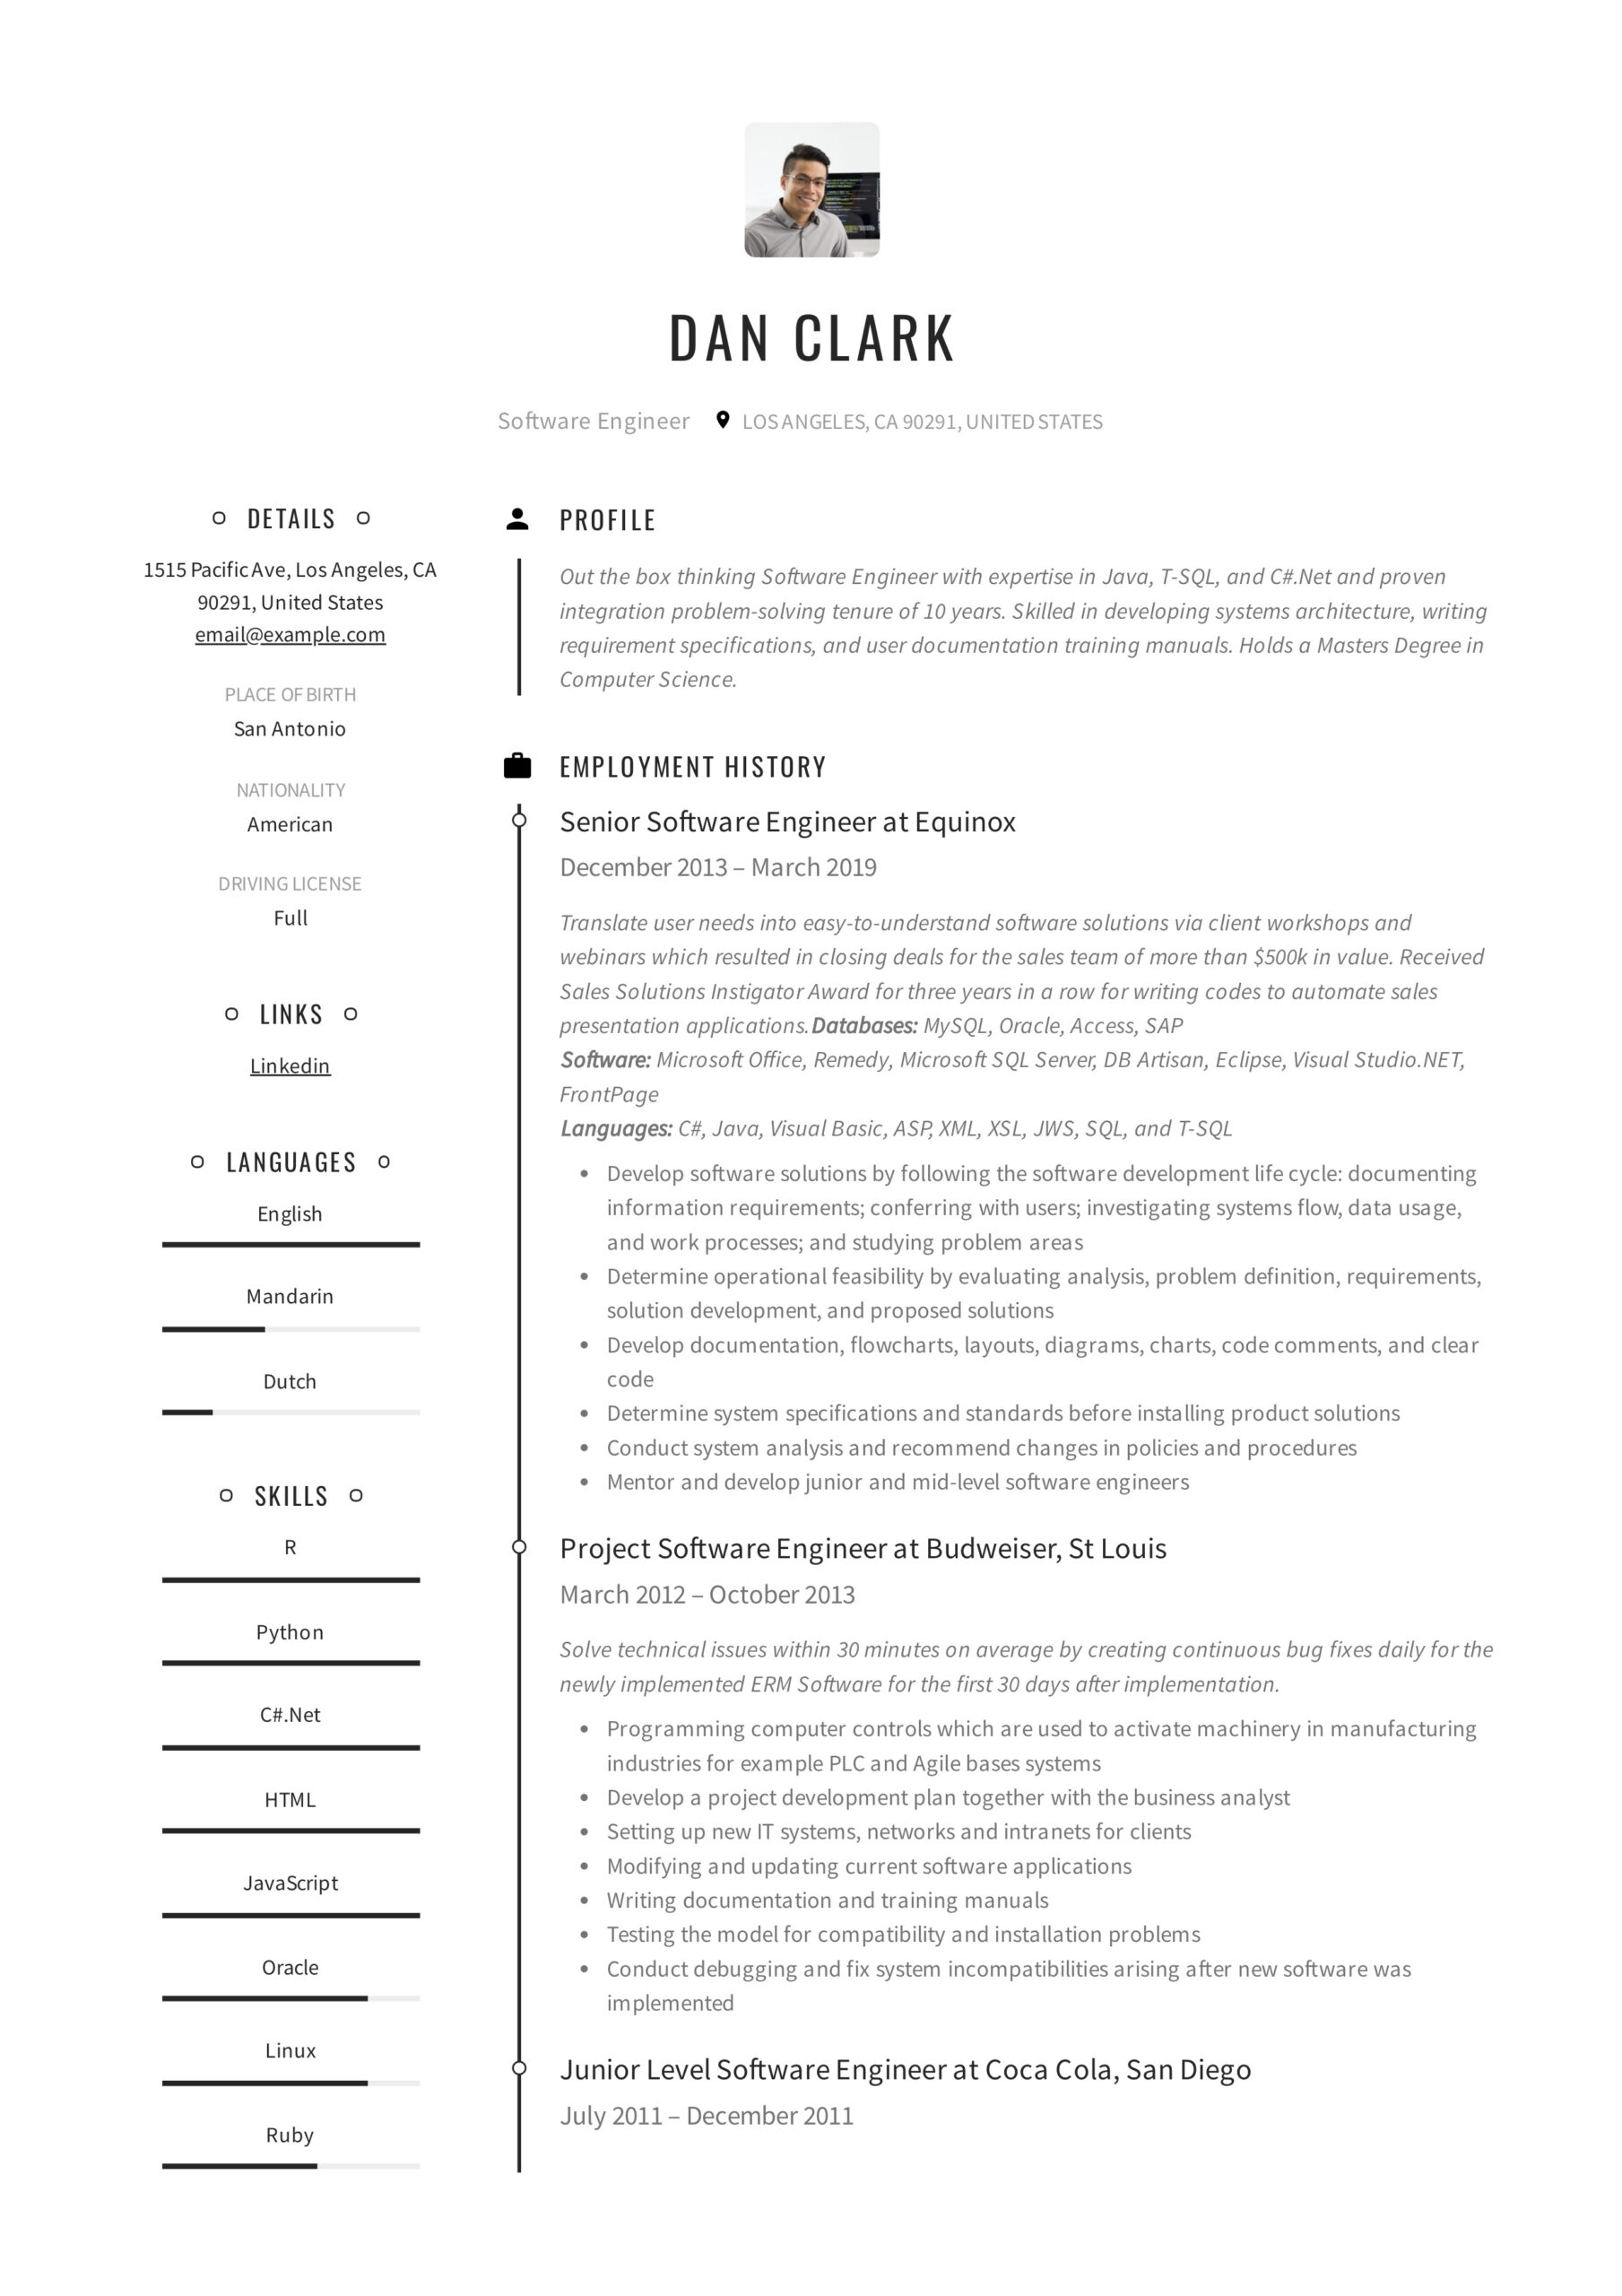 resume templates pdf word free downloads and guides perfect example dan software engineer Resume Perfect Resume Example 2020